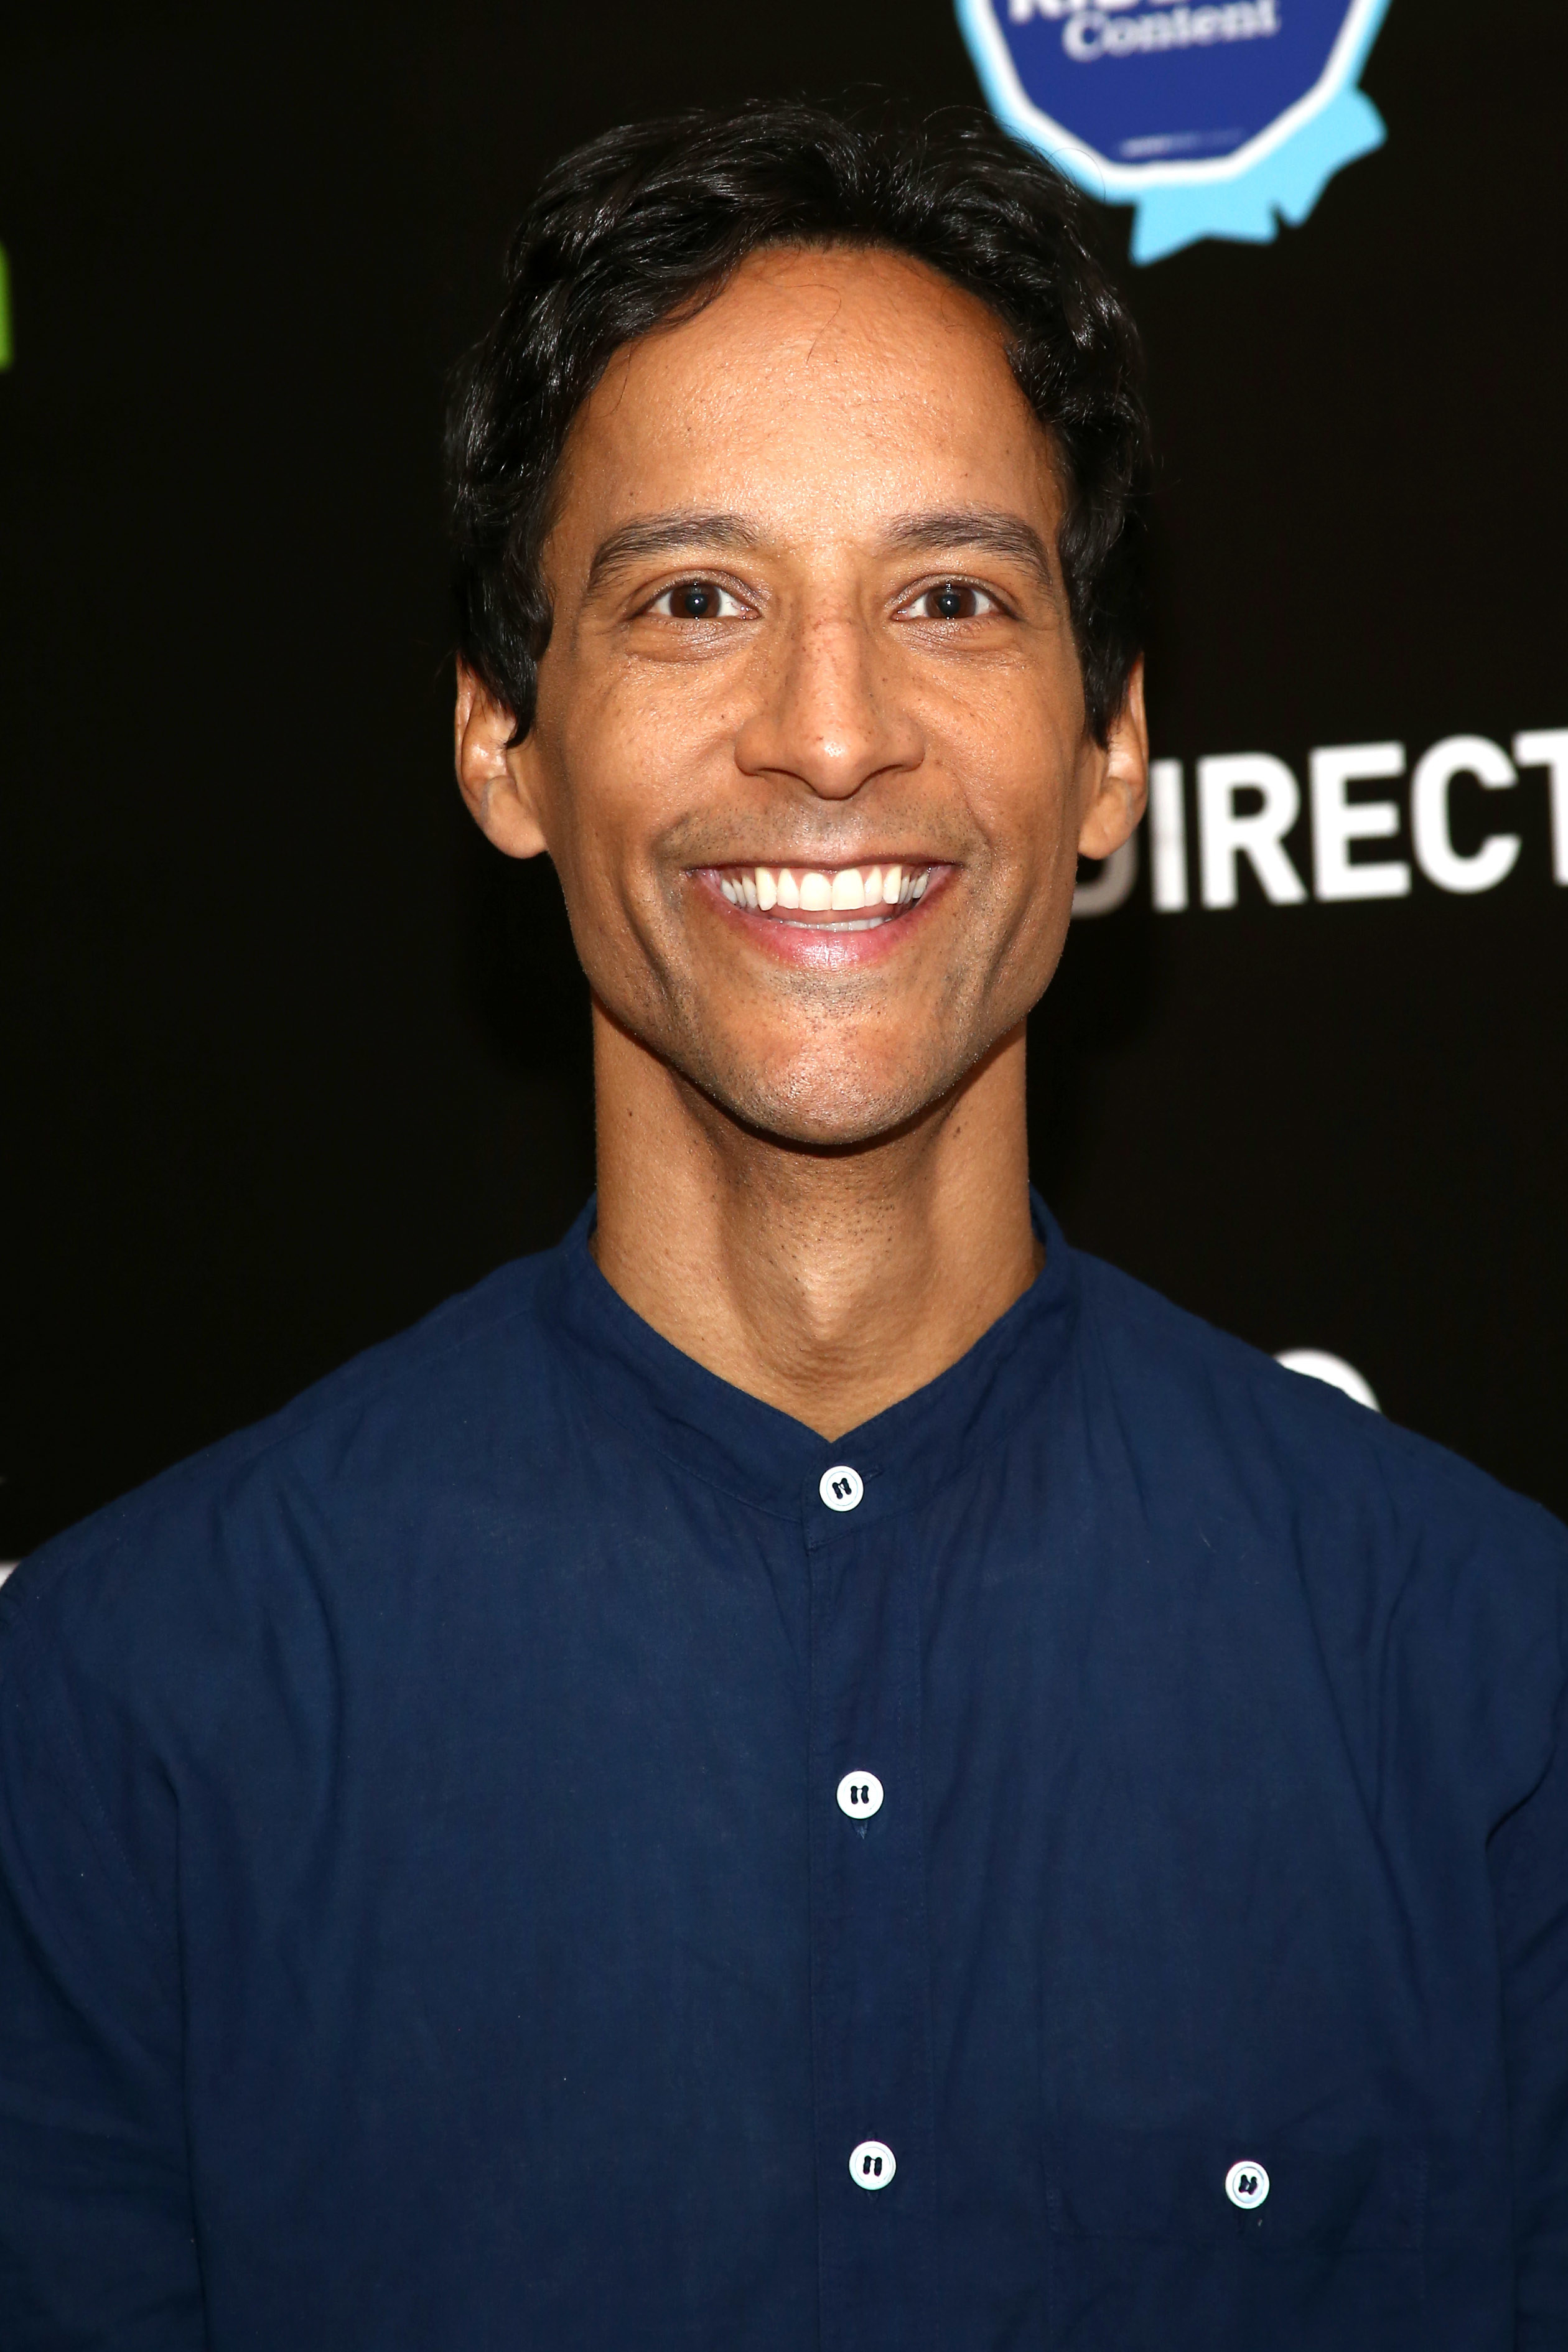 Danny Pudi smiles in a casual, navy blue button-down